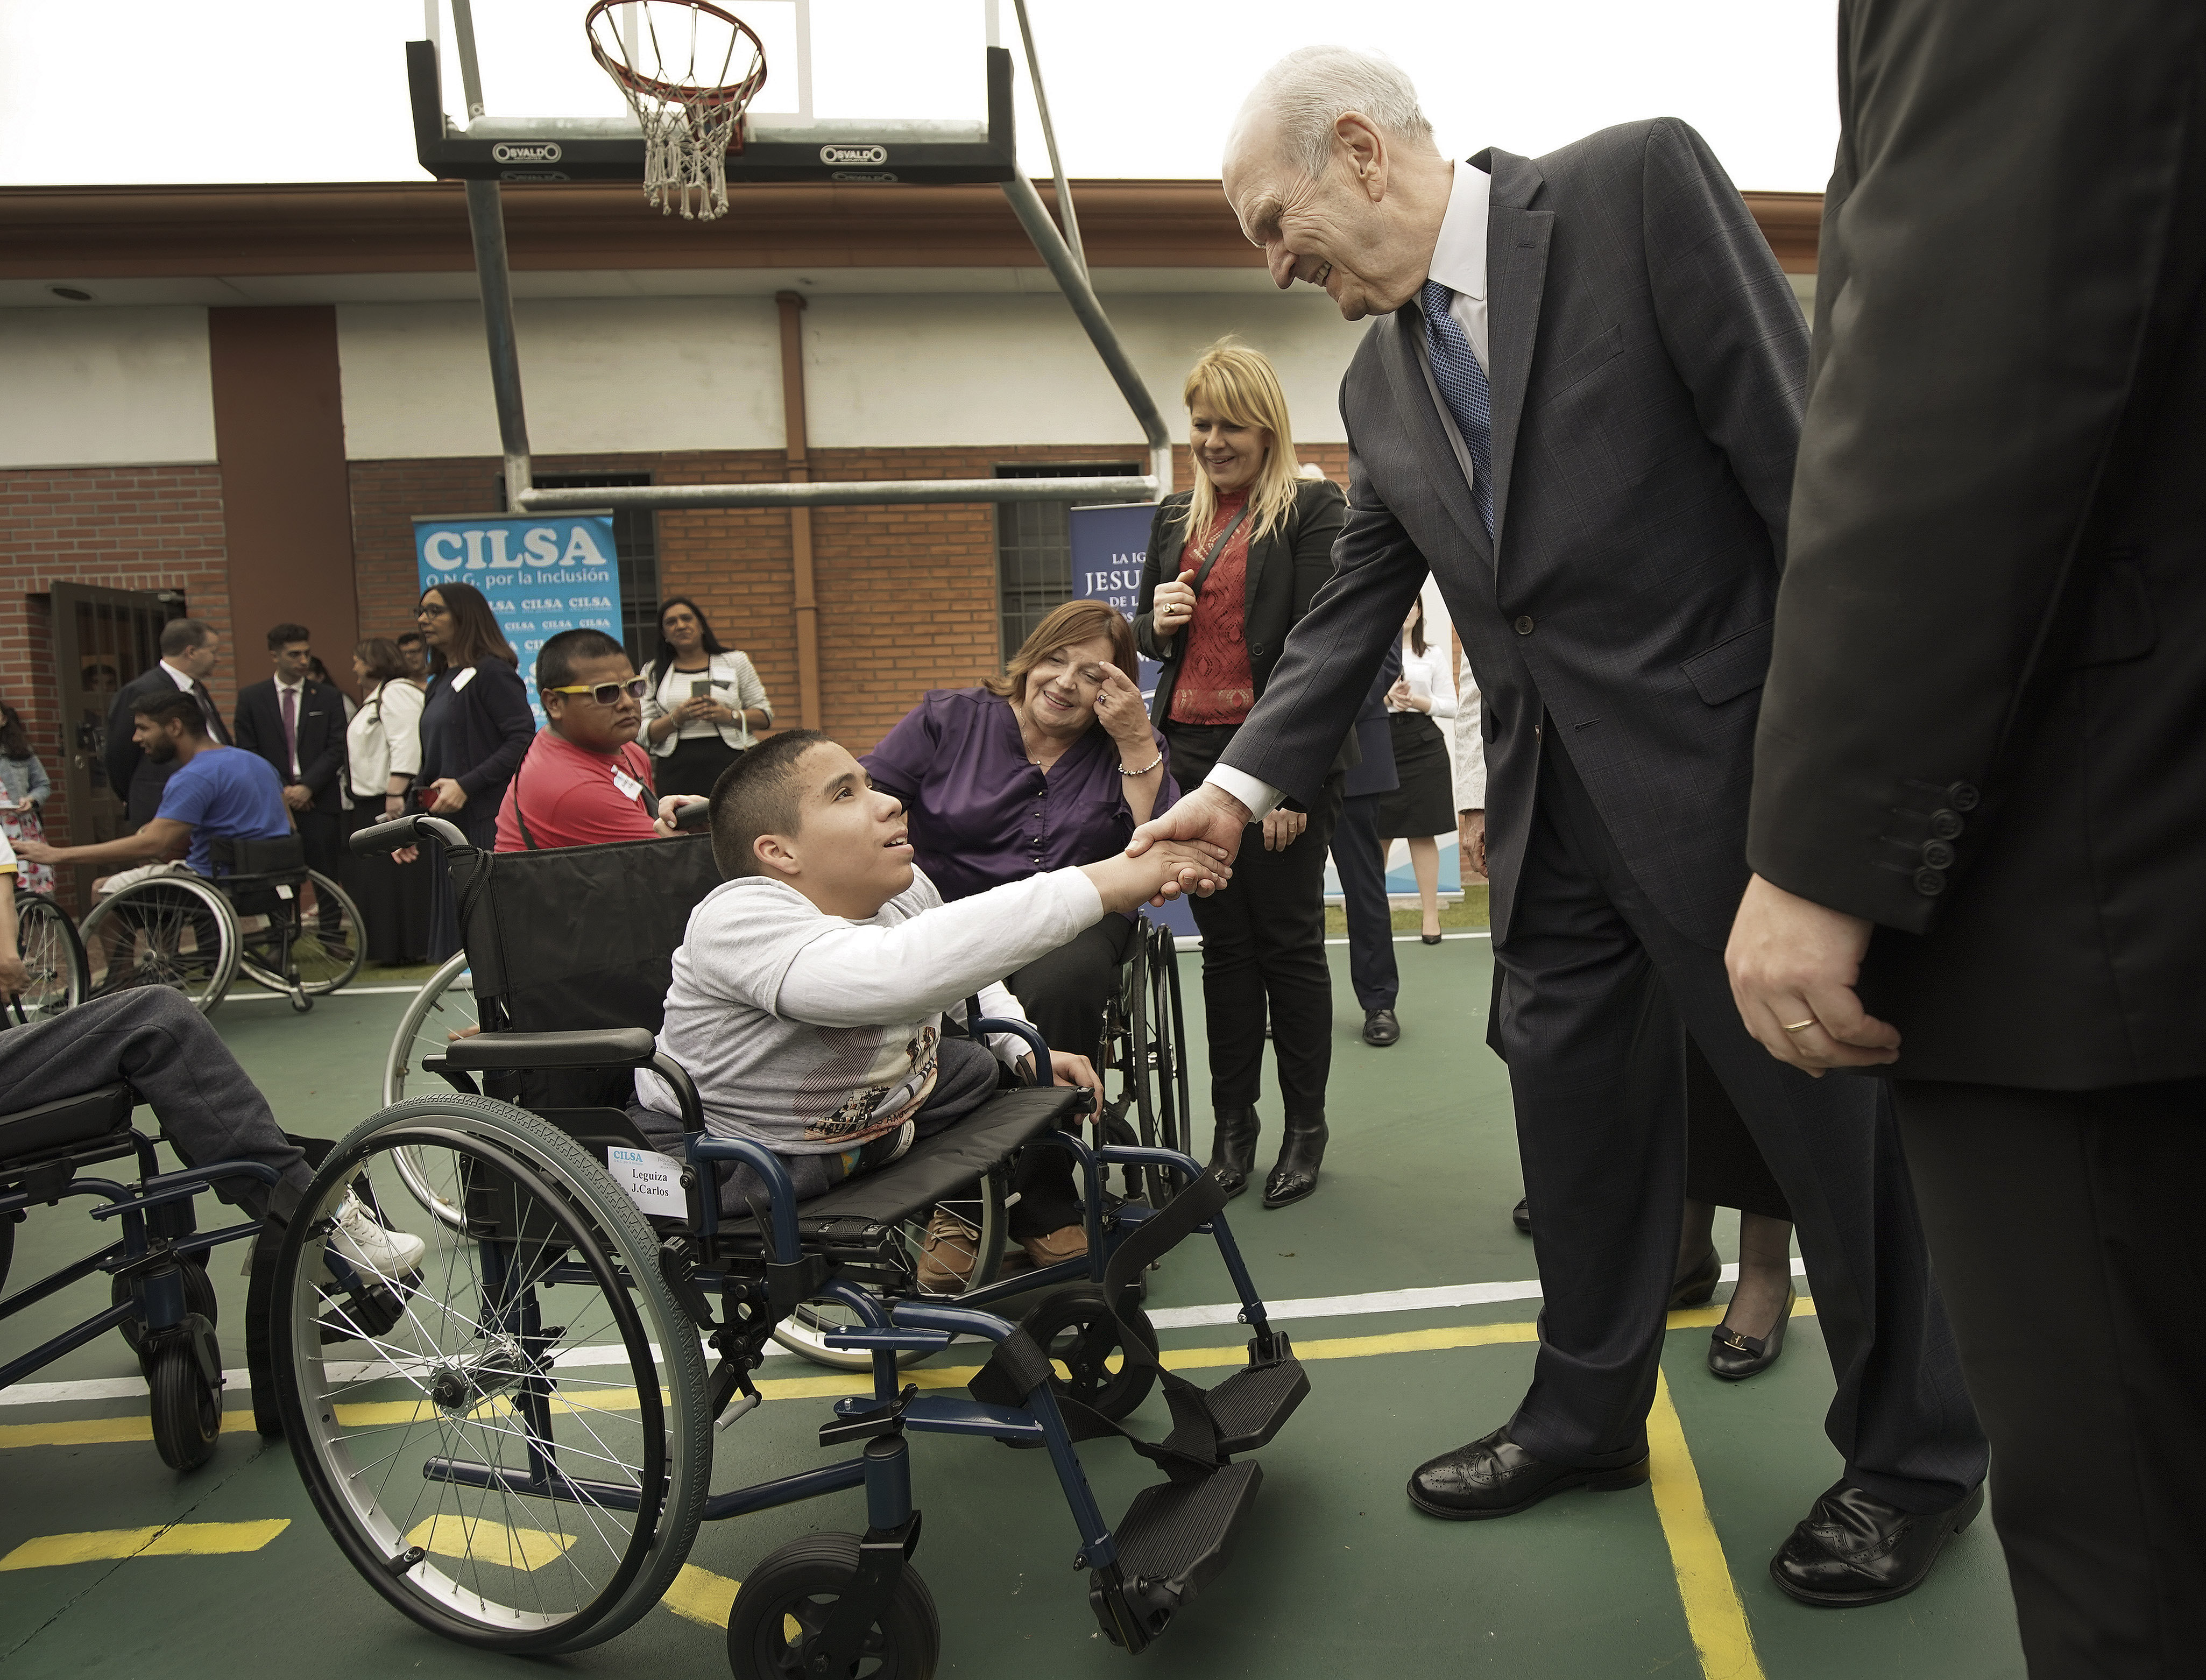 Juan Carlos Loza meets President Russell M. Nelson of The Church of Jesus Christ of Latter-day Saints after Latter-day Saint Charities donated a wheelchair to him at the Villa Urquiza Ward meetinghouse in Buenos Aires, Argentina, on Wednesday, Aug. 28, 2019.